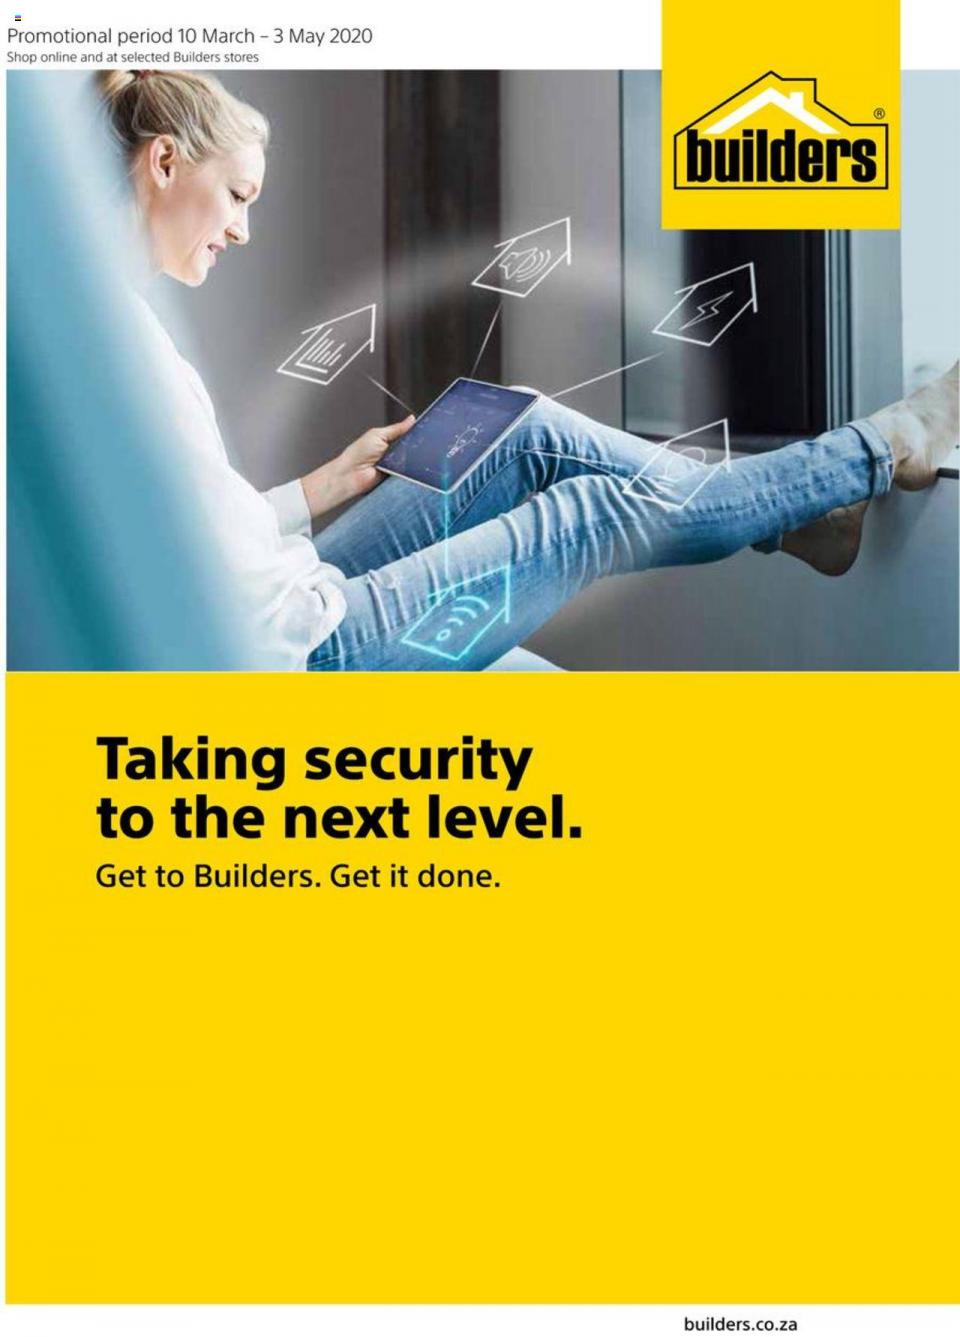 builders warehouse specials taking security to the next level 10 march 2020